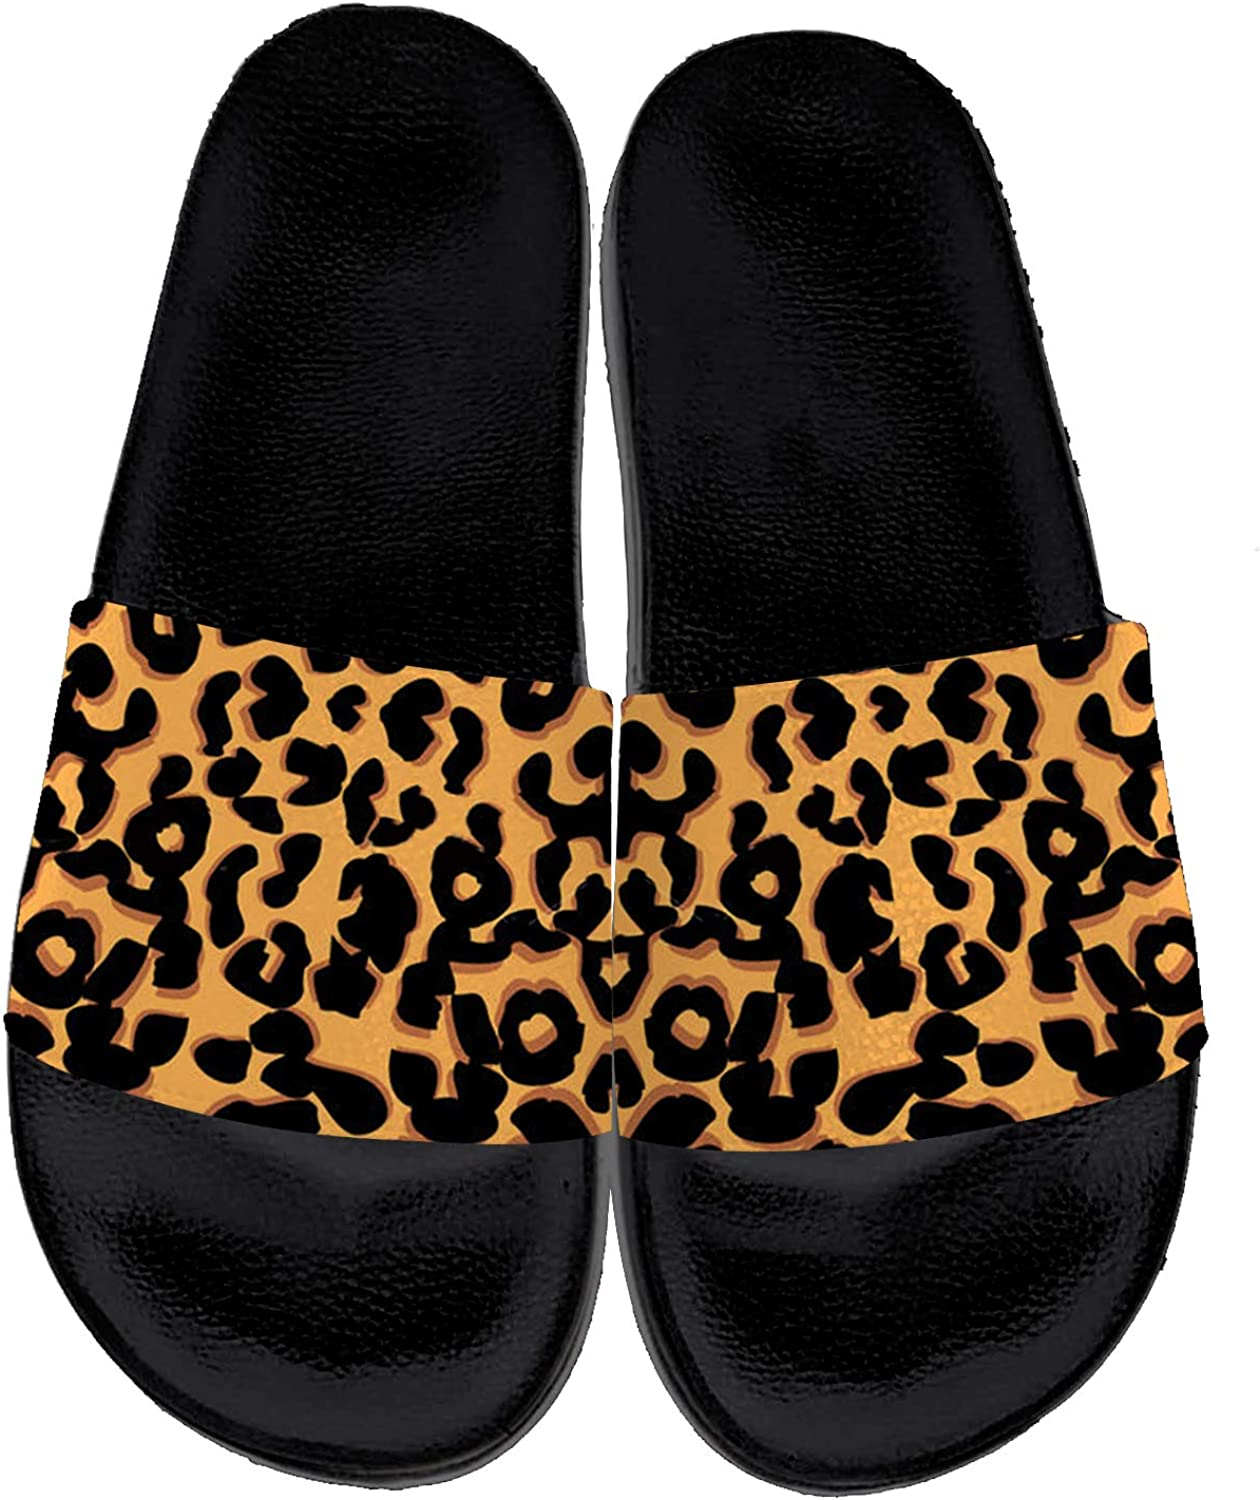 Leopard Print Slides Womens Mens Casual Slide Sandals Indoor Outdoor Bath Beach Shower Shoes Casual Shoes